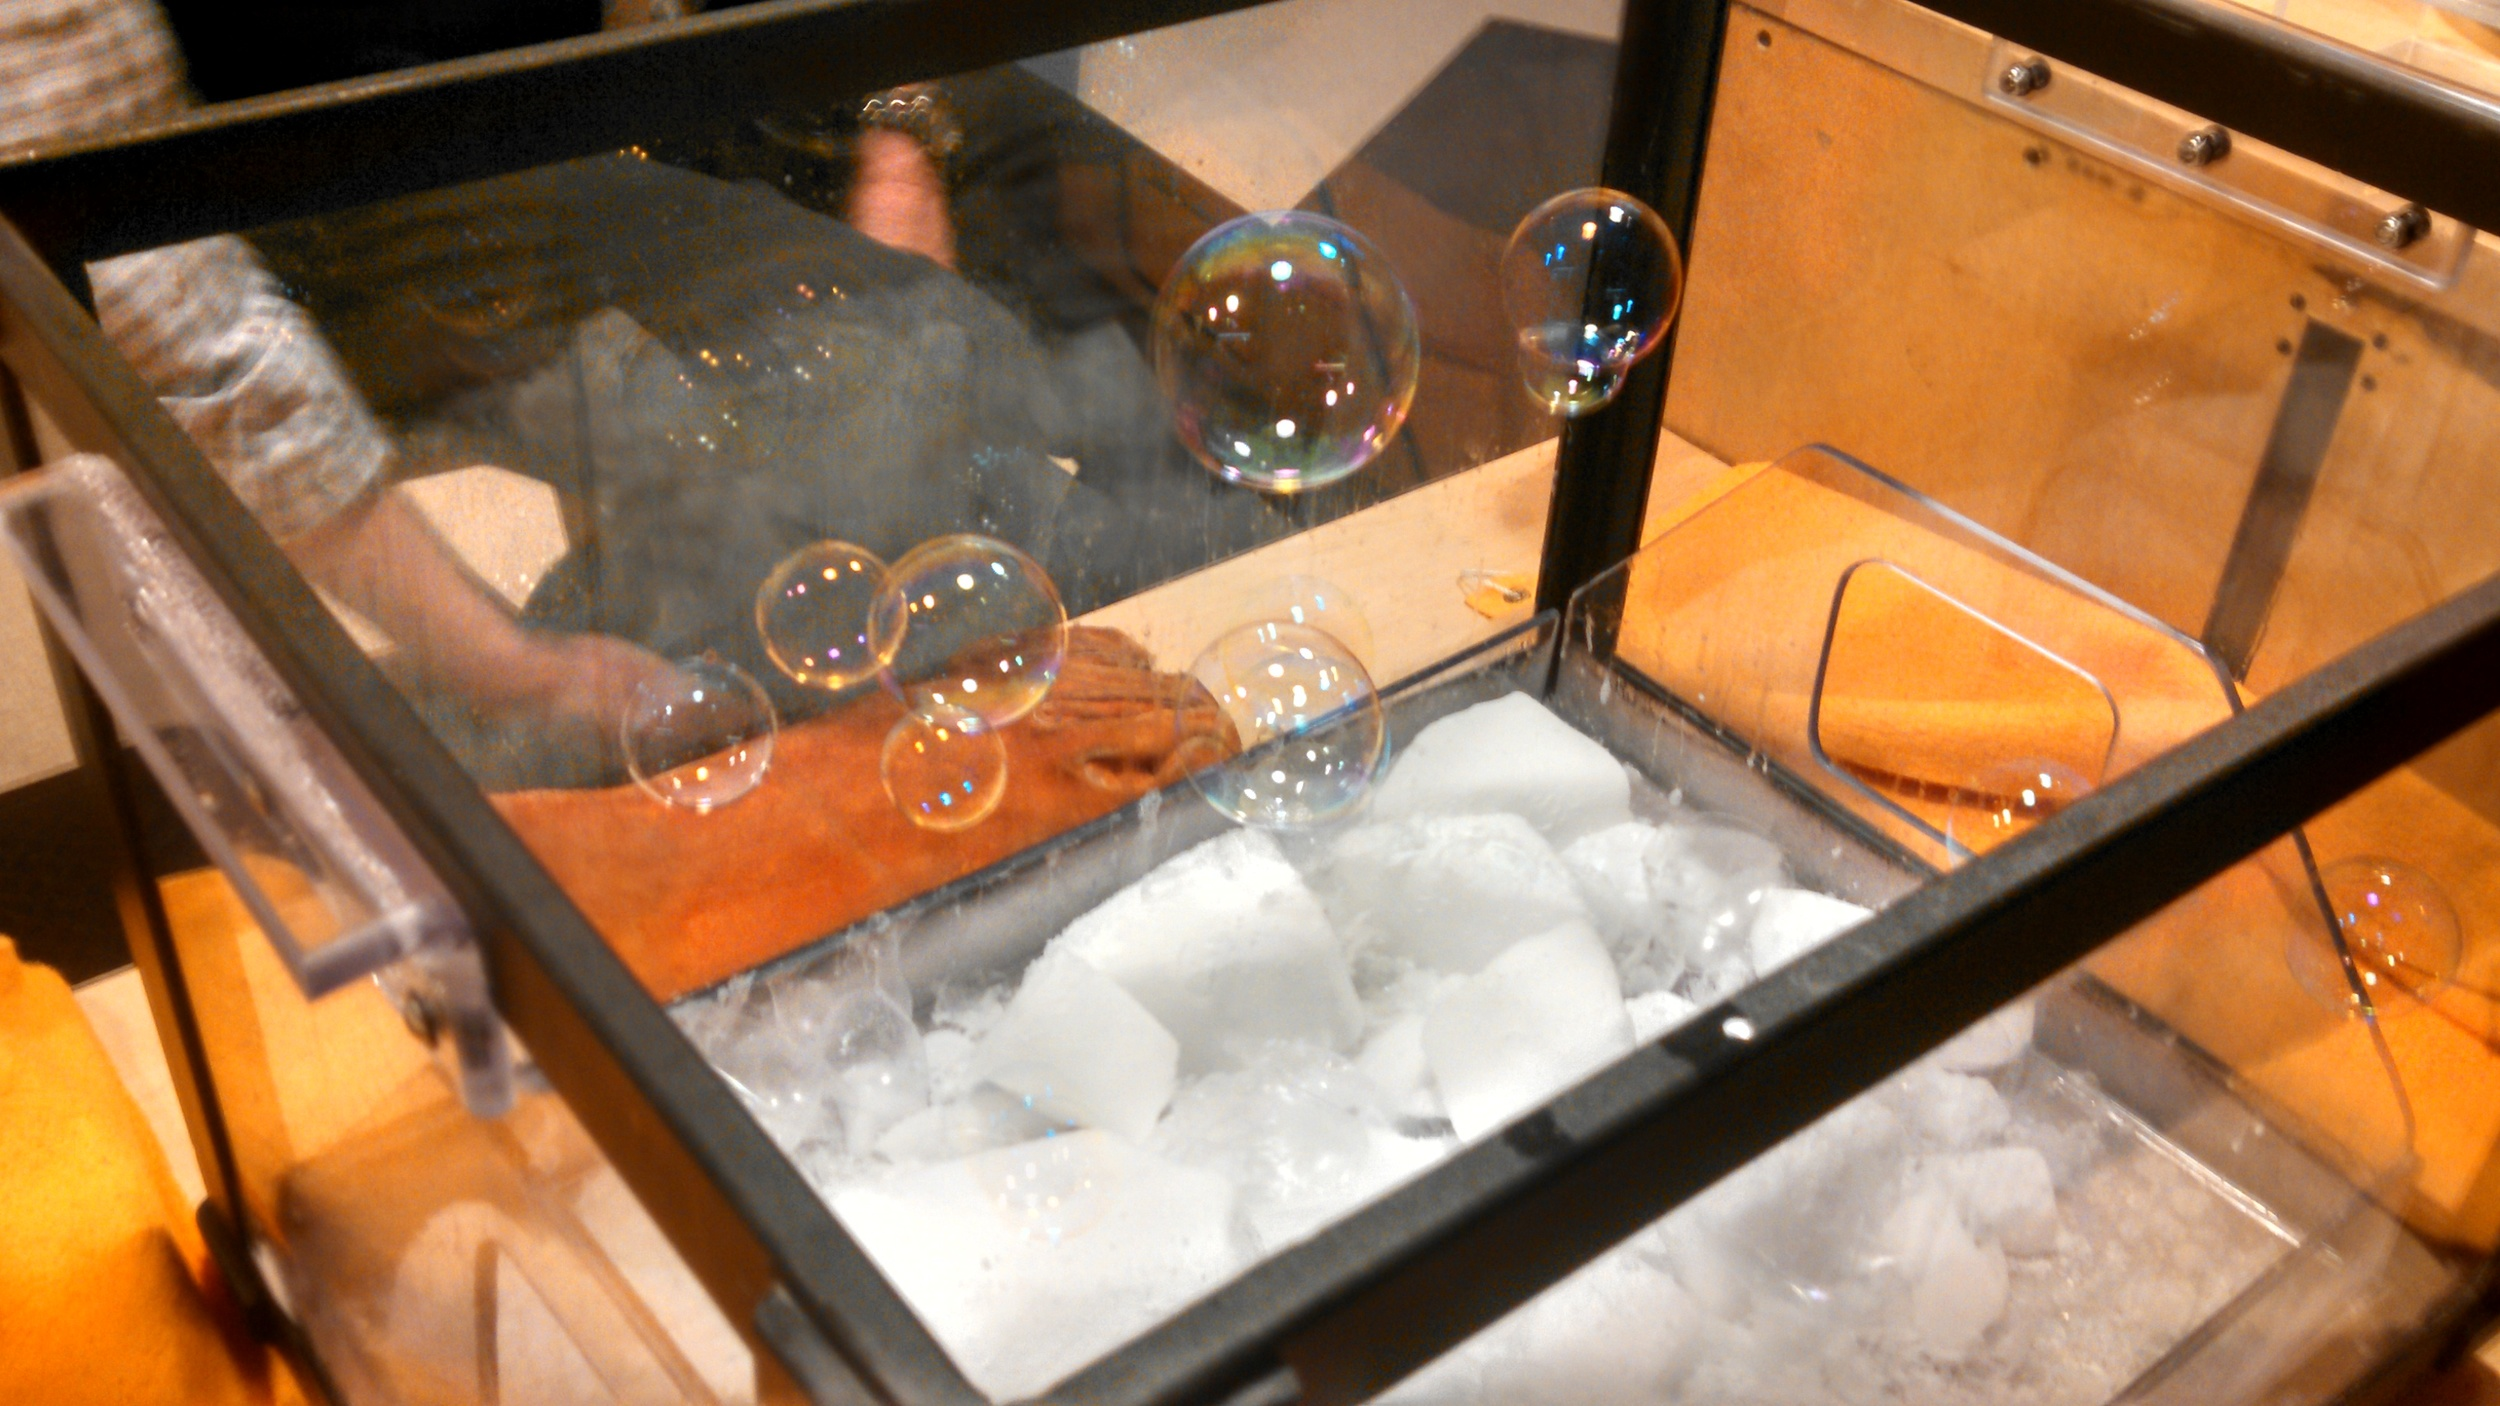 Bubbles hover in a container of dry ice!